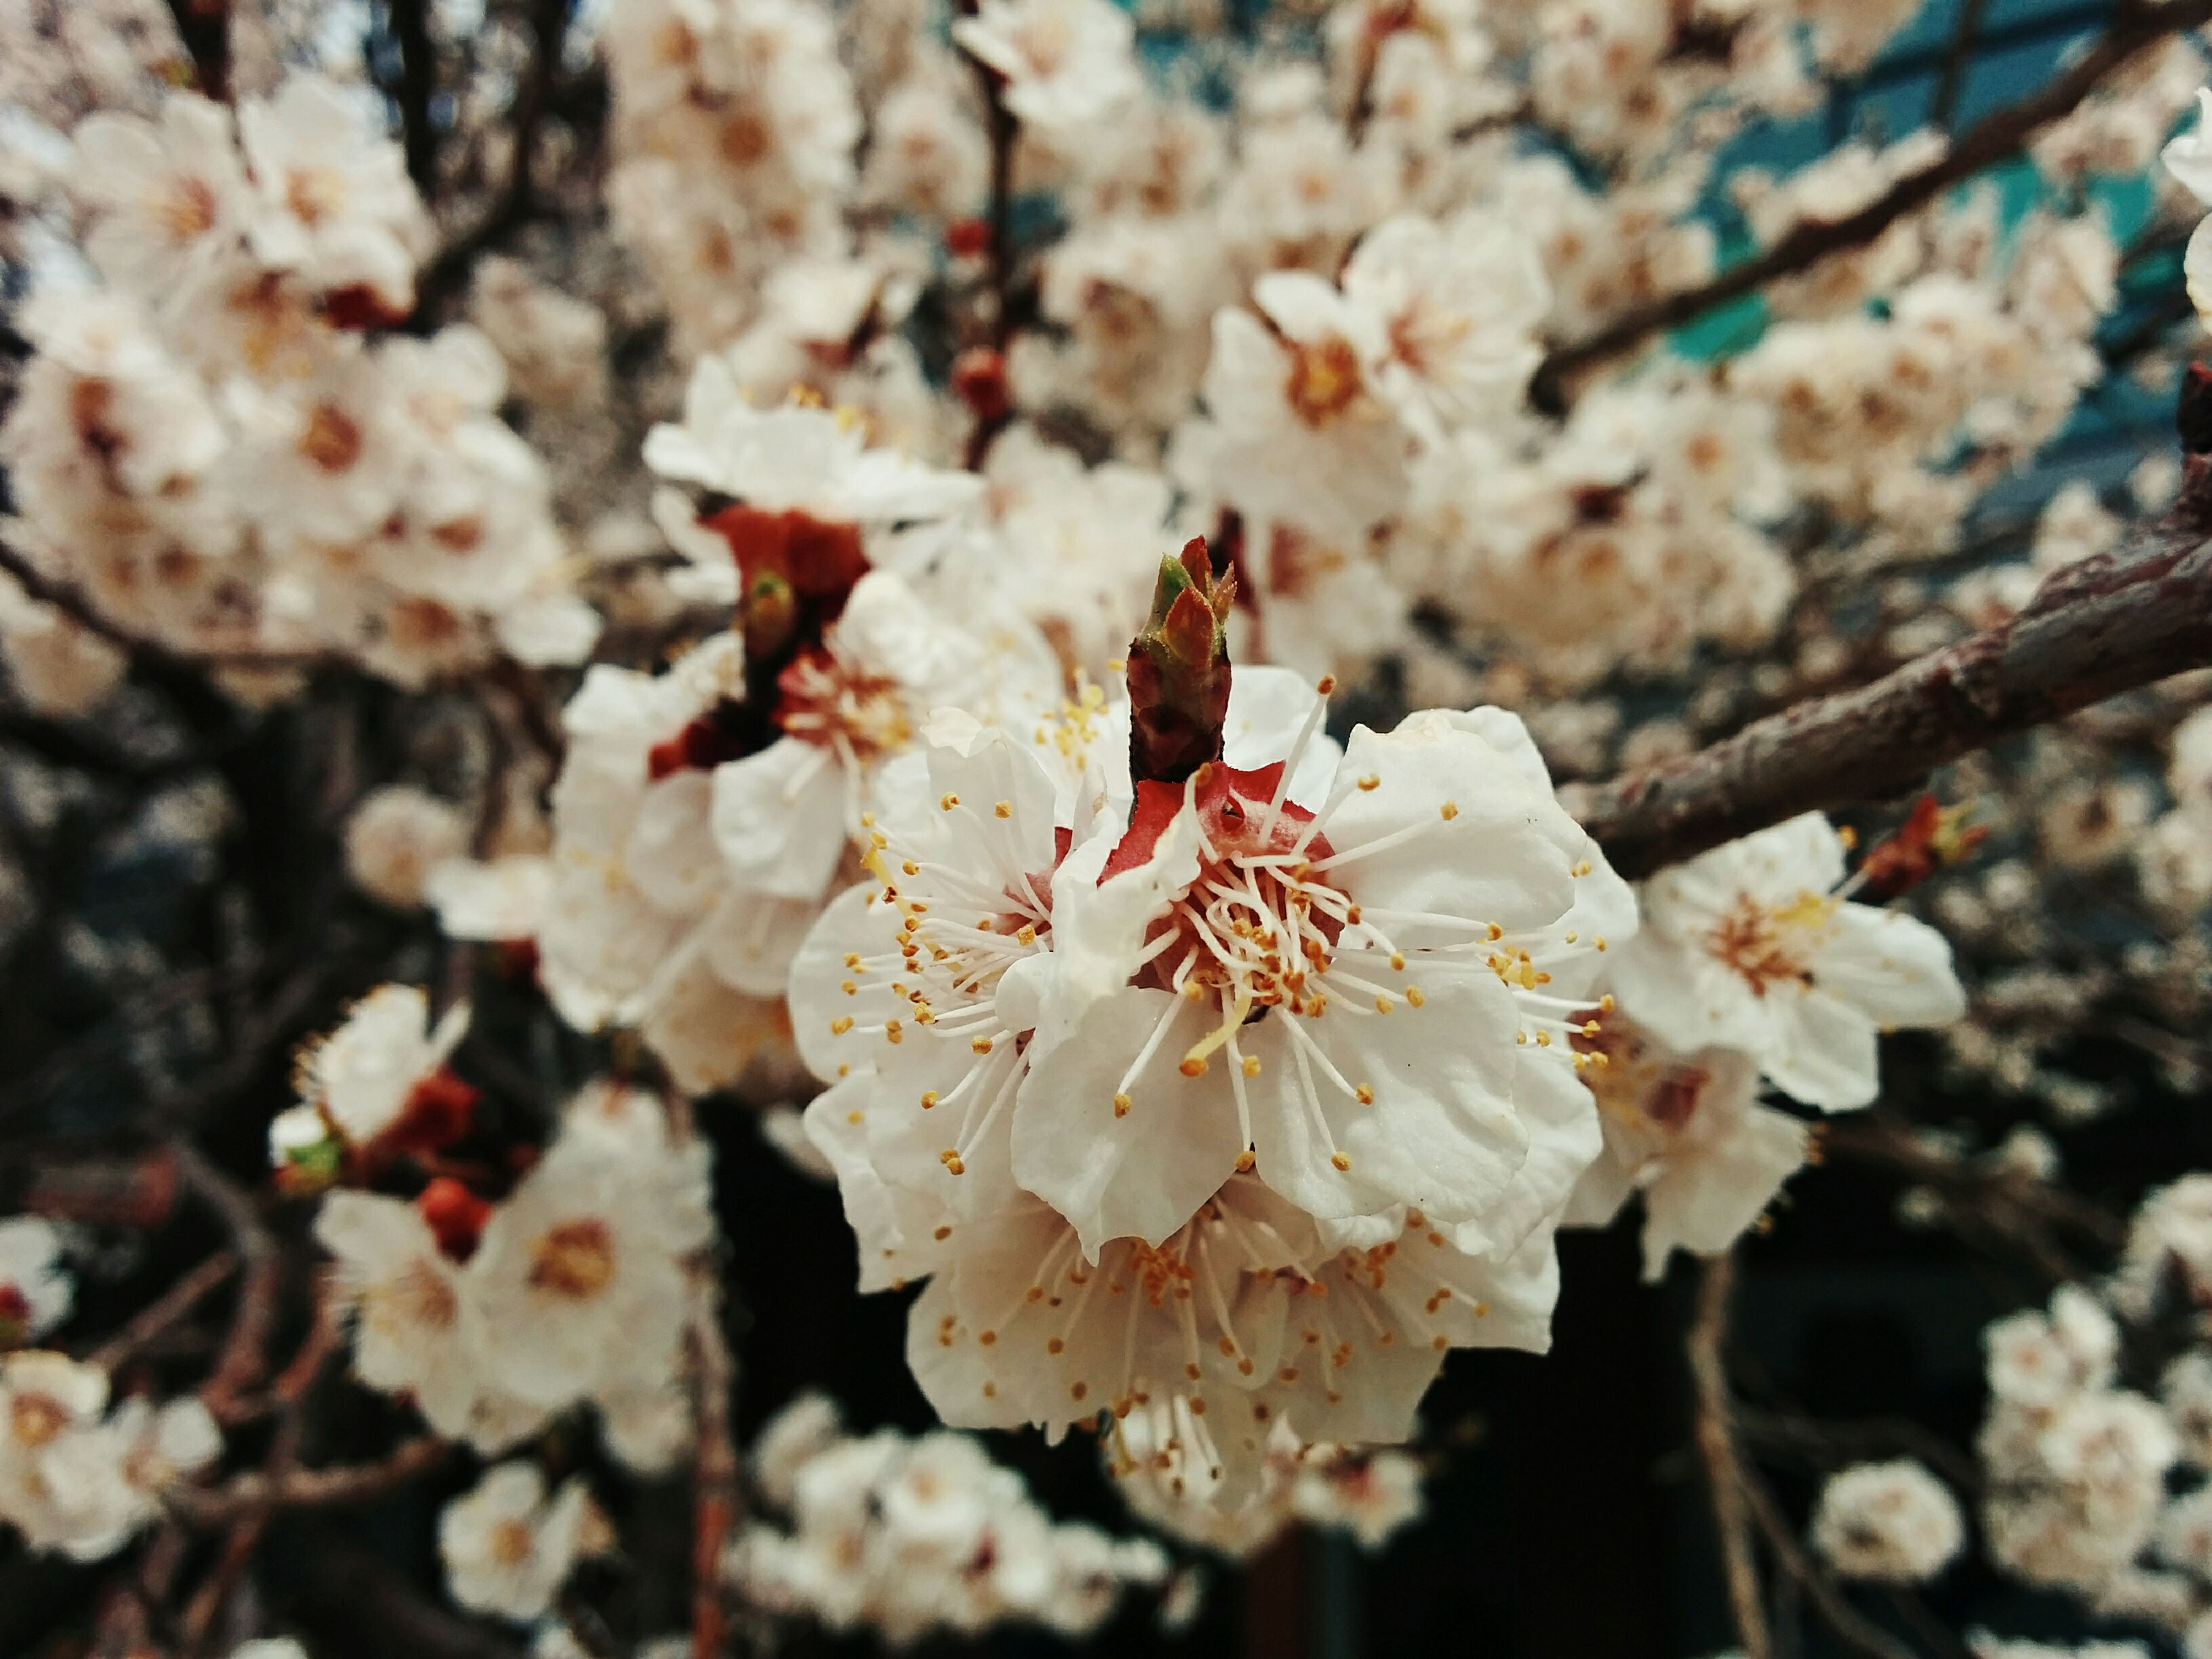 flower, fragility, petal, freshness, cherry blossom, growth, white color, focus on foreground, beauty in nature, flower head, tree, close-up, nature, branch, blossom, cherry tree, in bloom, blooming, springtime, stamen